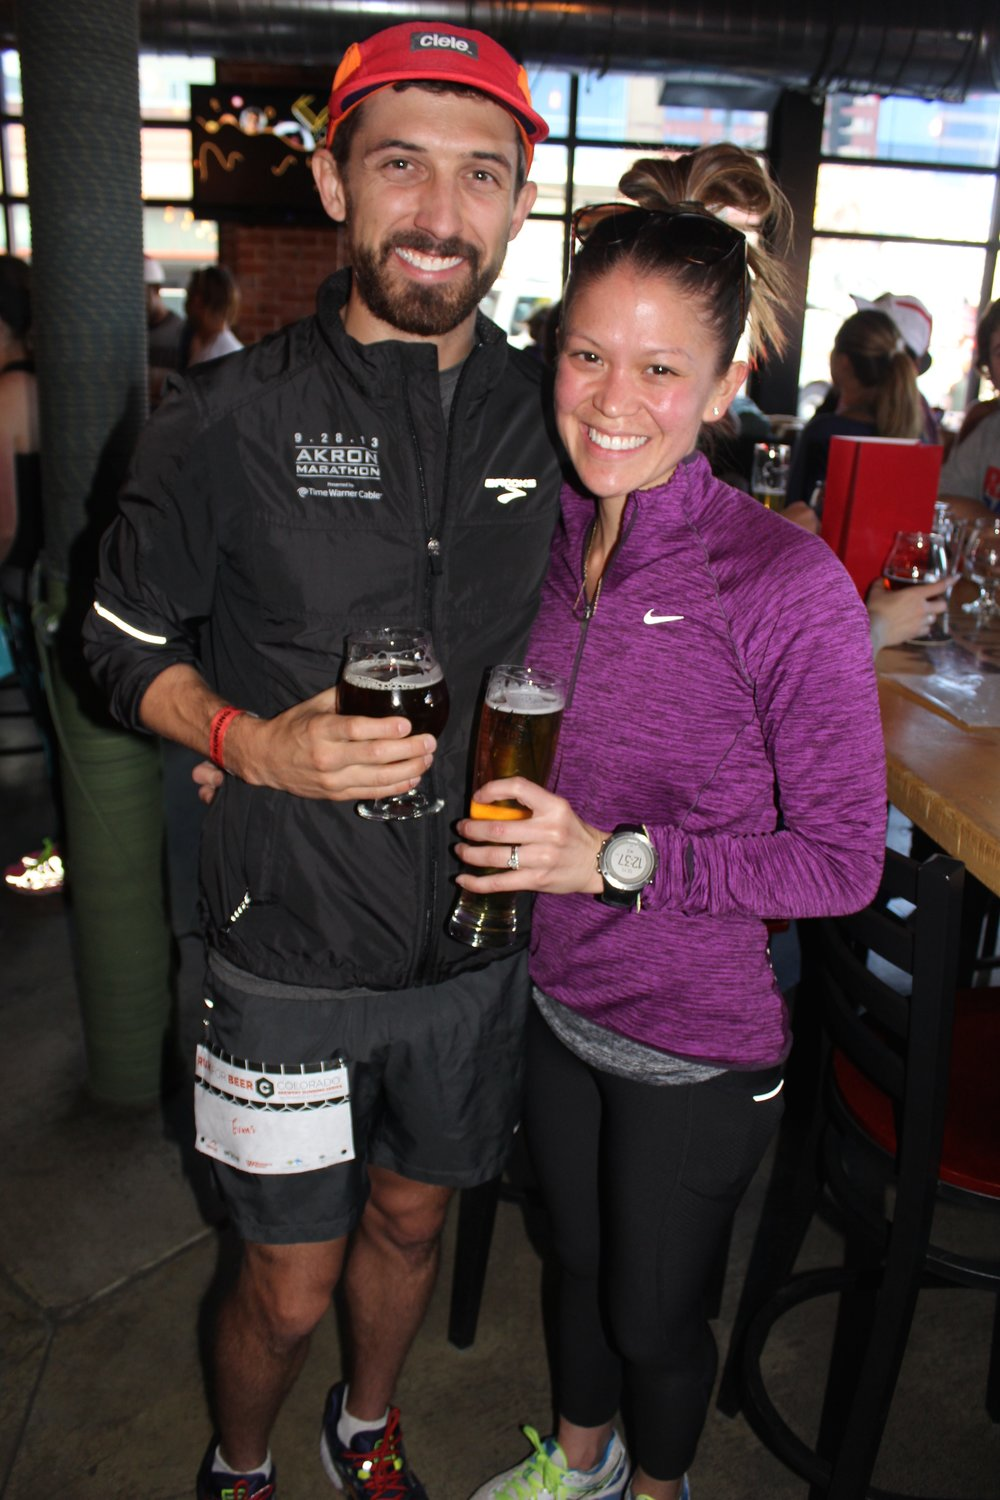 Connor and Betsy Ferguson attended five out of nine Colorado Brewery Running Series this season.